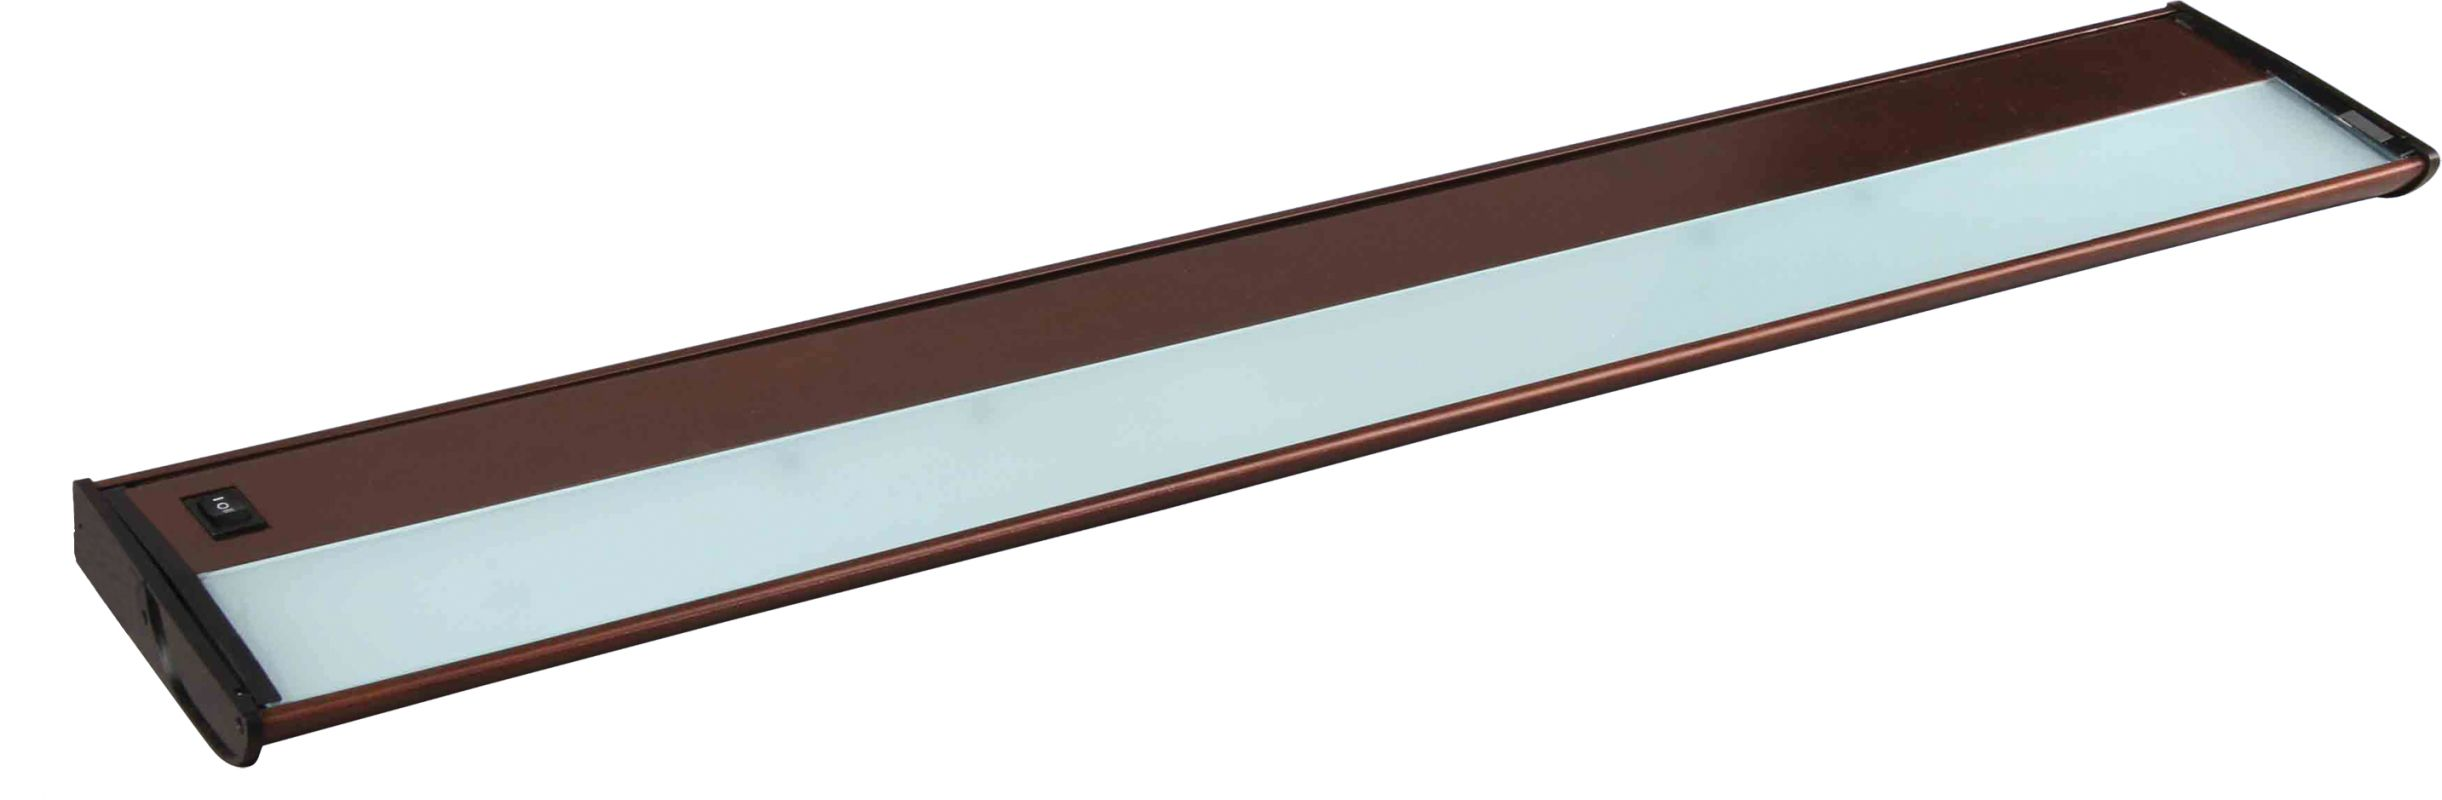 "Maxim 87834 40"" 5 Light Xenon Under Cabinet Light from the CounterMax"